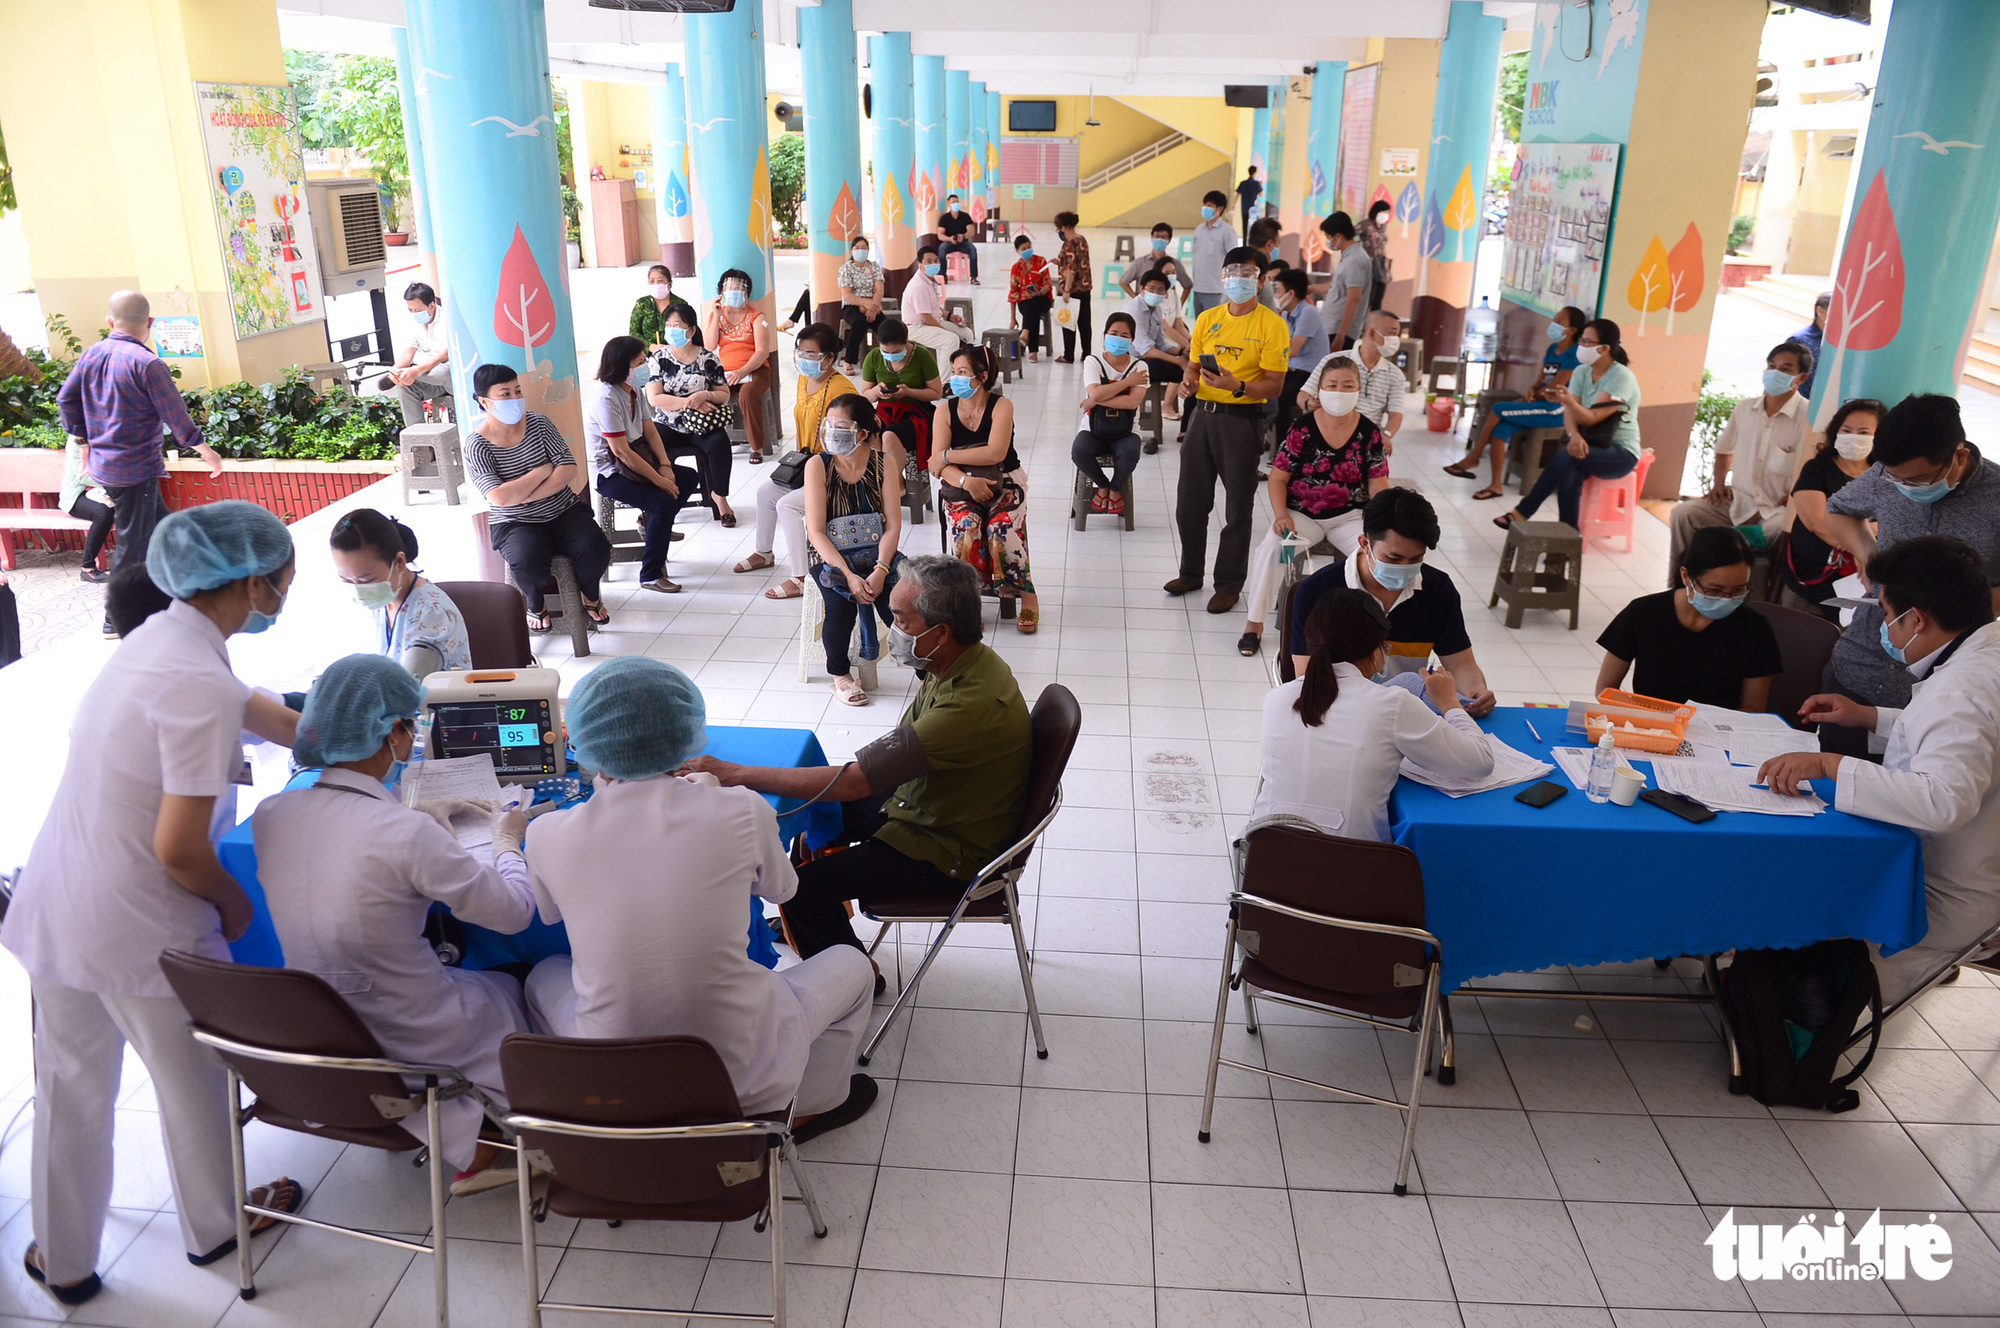 People wait for COVID-19 injection at a vaccination site at Nguyen Binh Khiem Elementary School in District 1, Ho Chi Minh City, June 22, 2021. Photo: Quang Dinh / Tuoi Tre